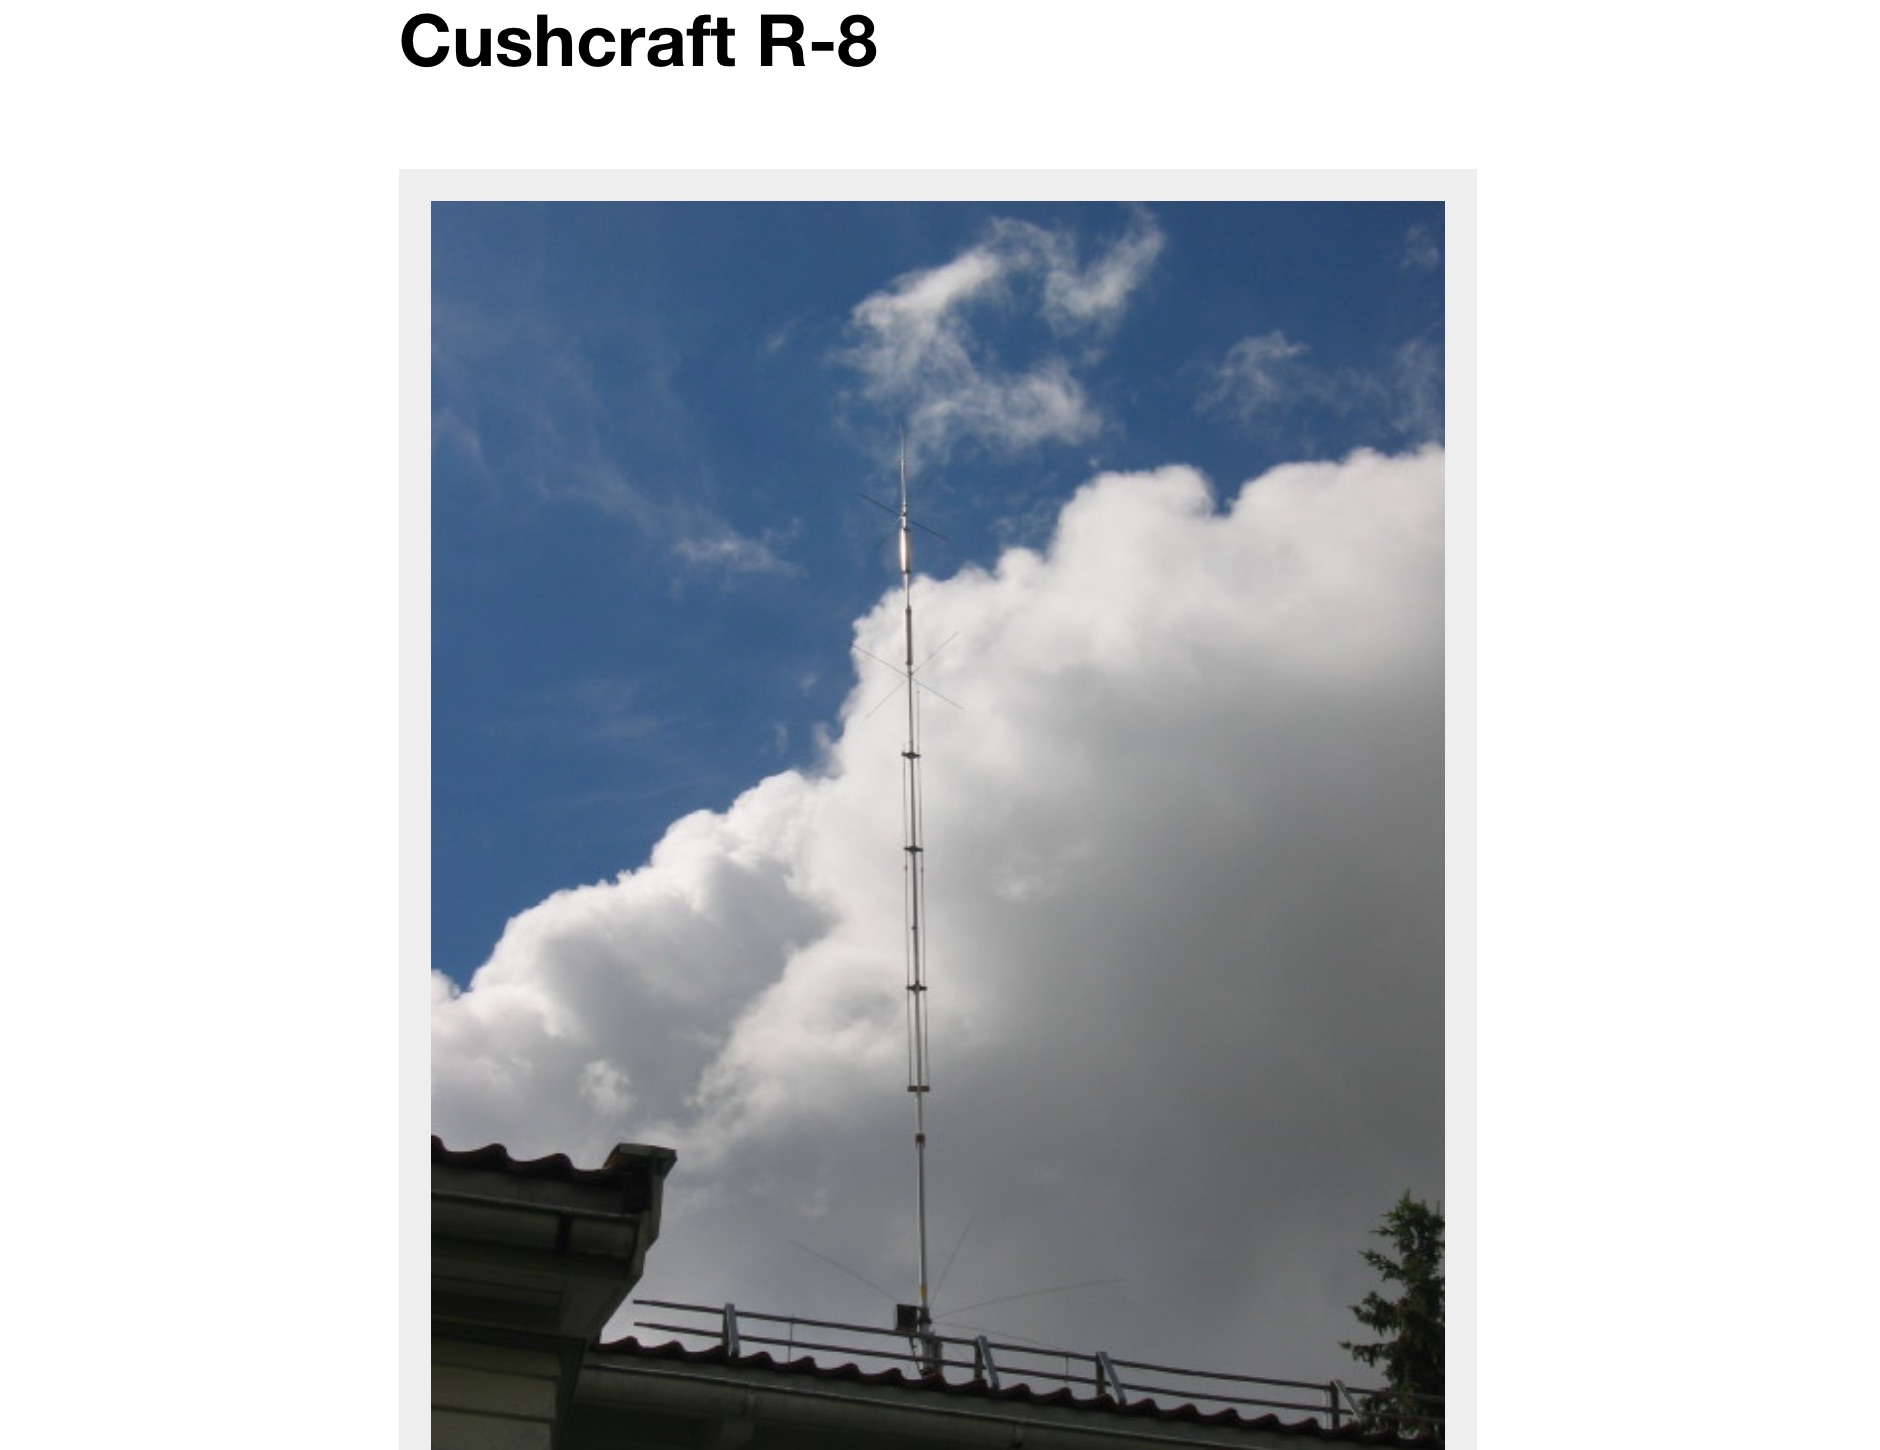 Cushcraft R-8 review